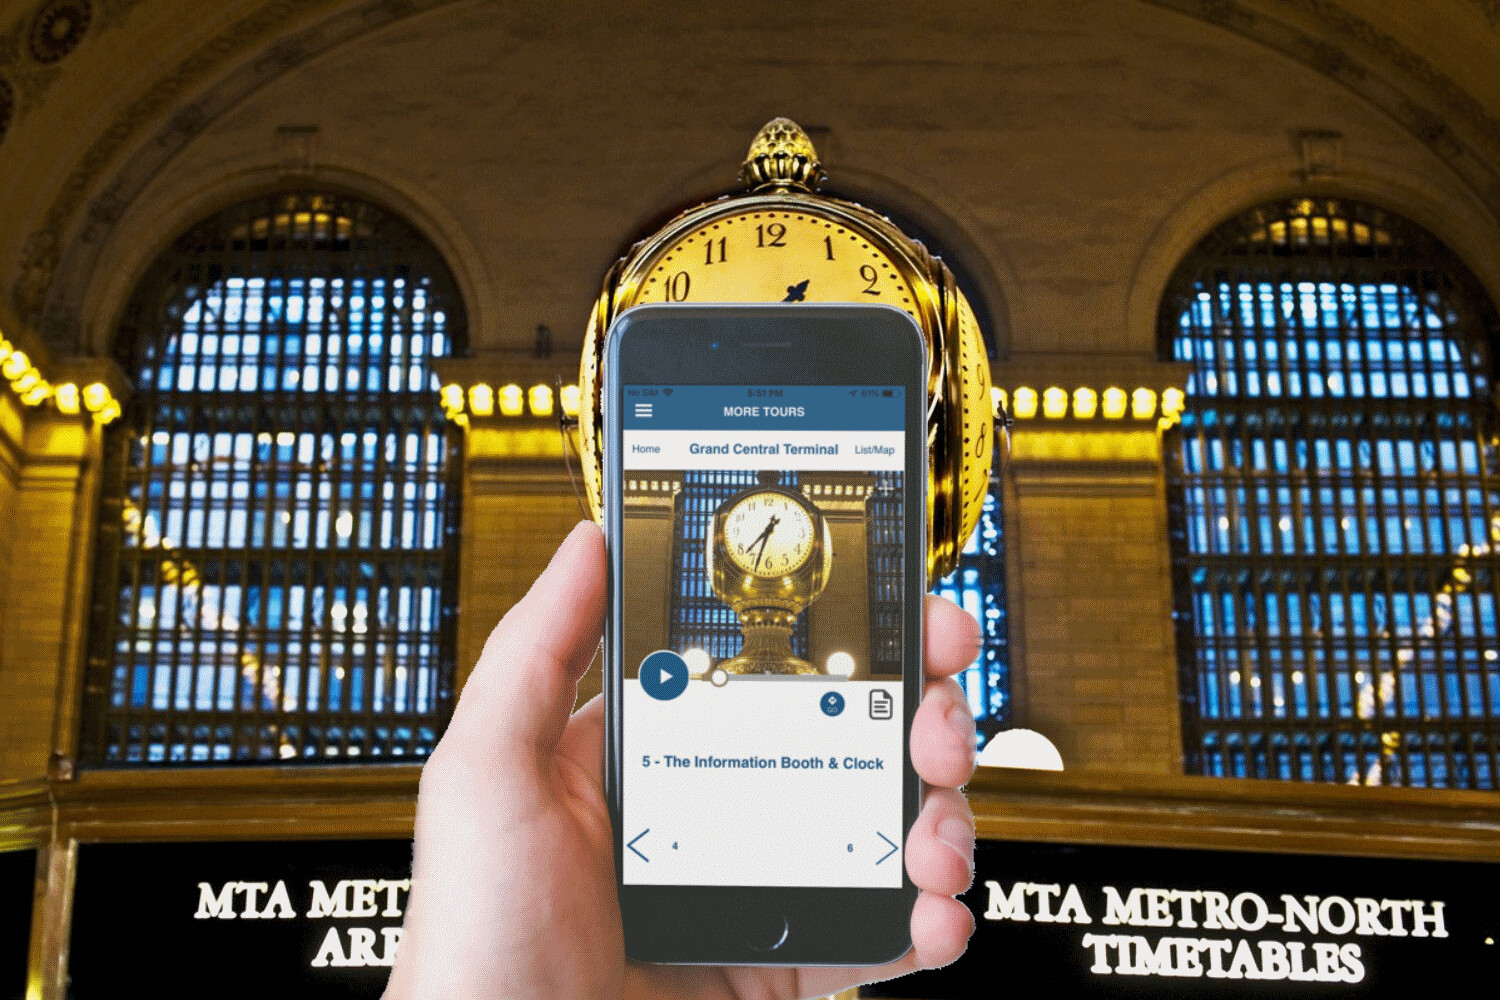 Grand Central Self-Guided Walking Tour